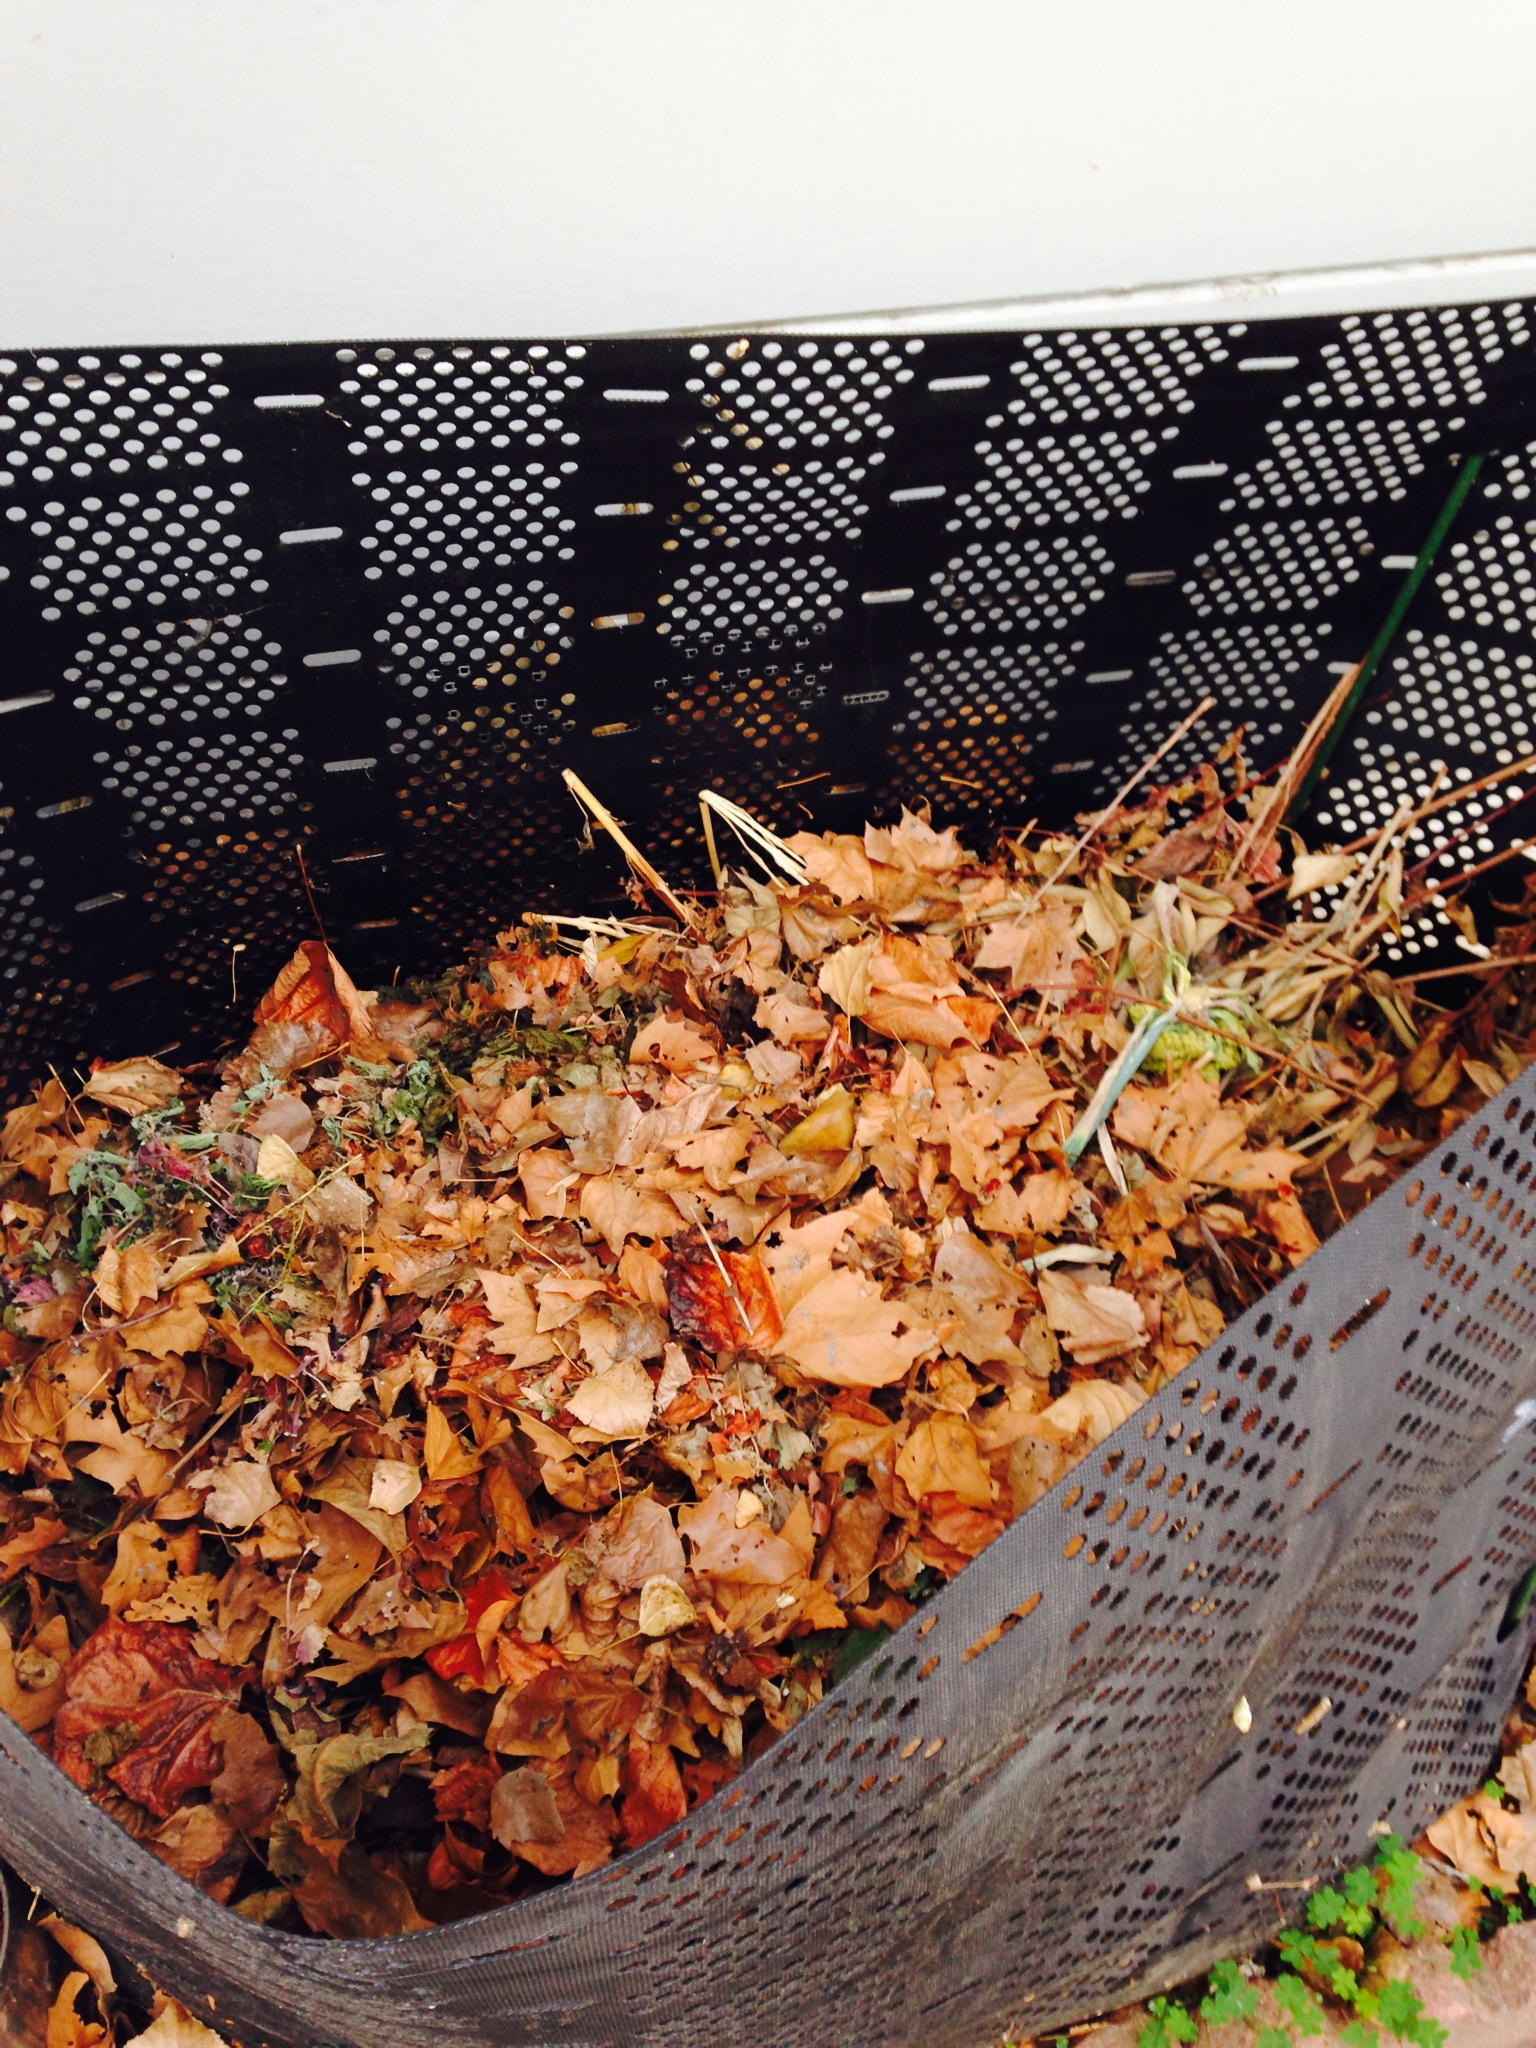 Compost bin full of fall leaves with a variety of goodies underneath.